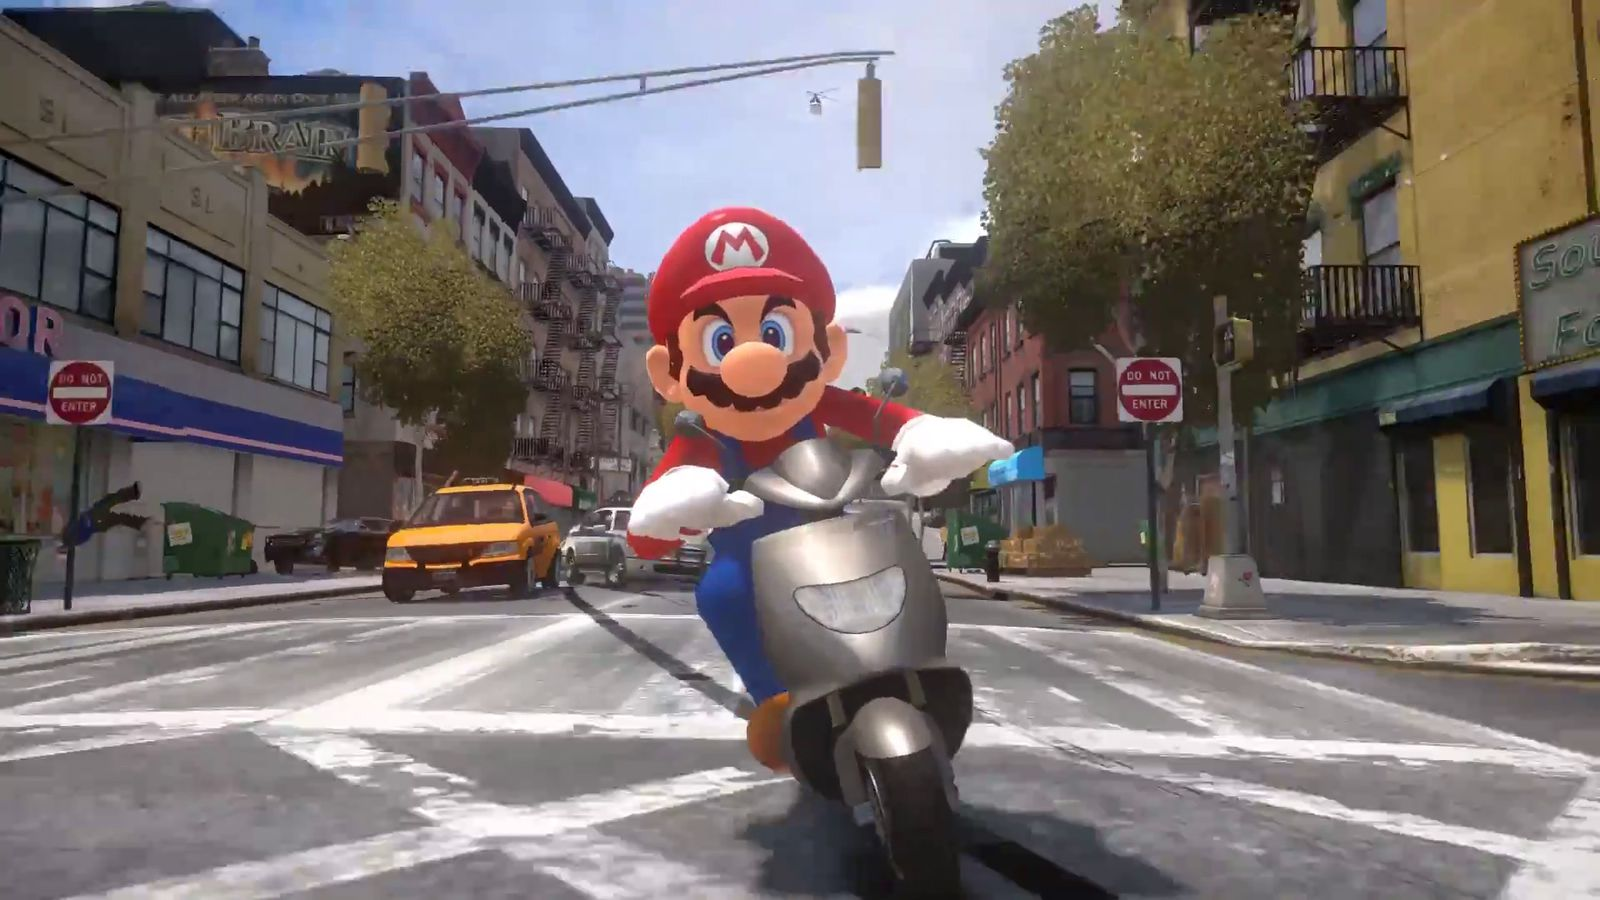 Gta 5 Map Leak Super Mario Odyssey in...